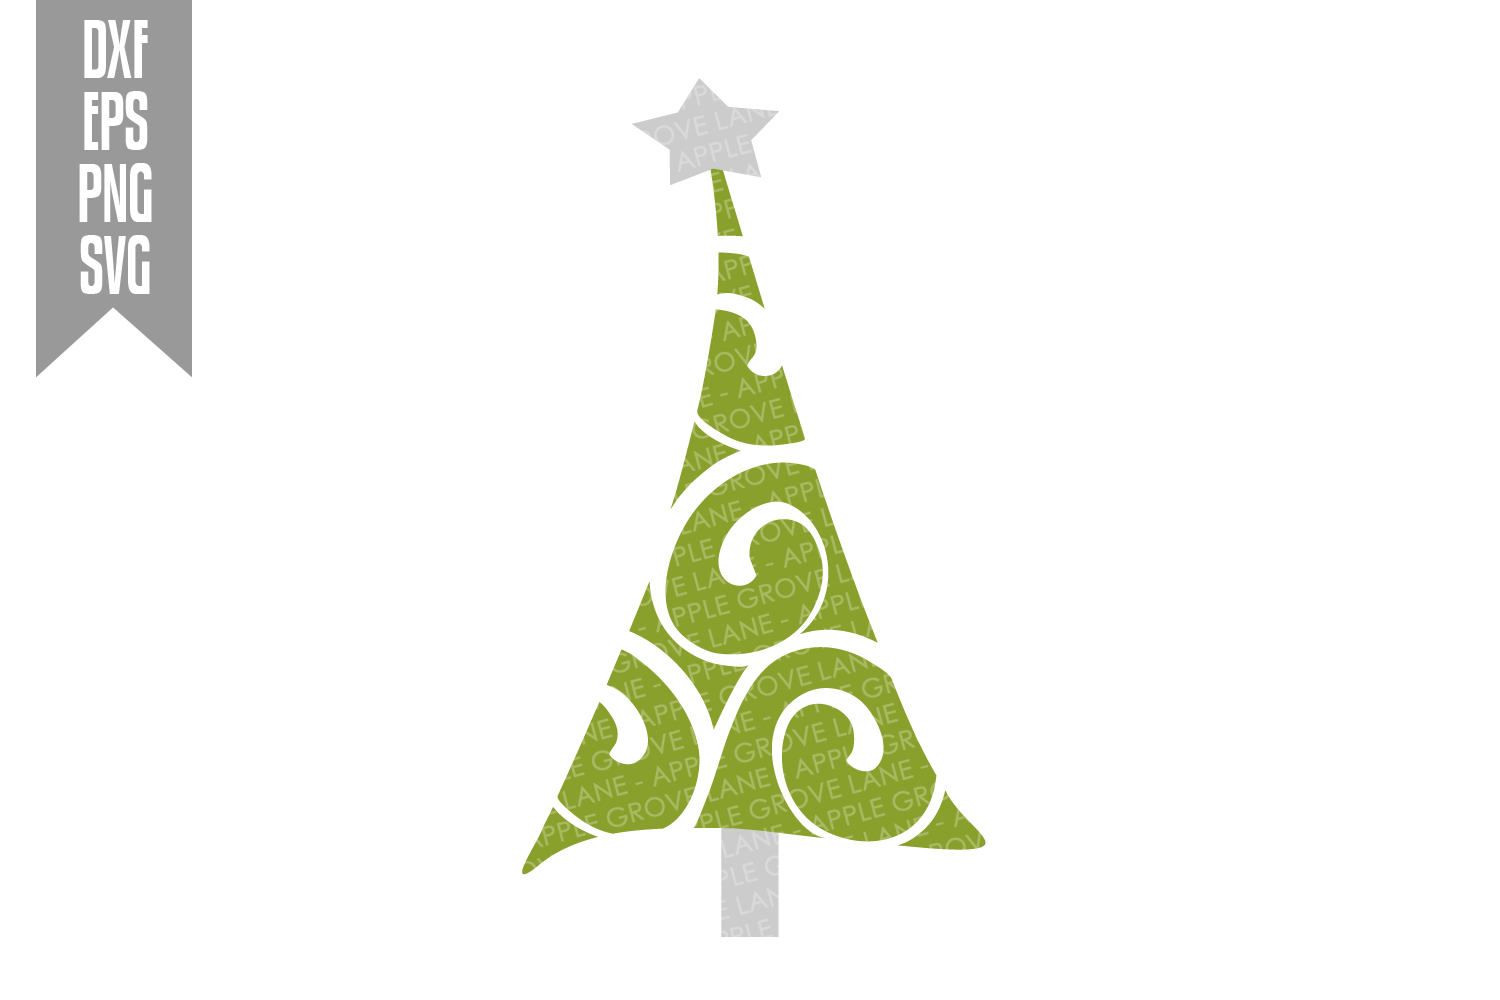 Christmas Tree Svg Bundle - 6 designs included - Svg File example image 7